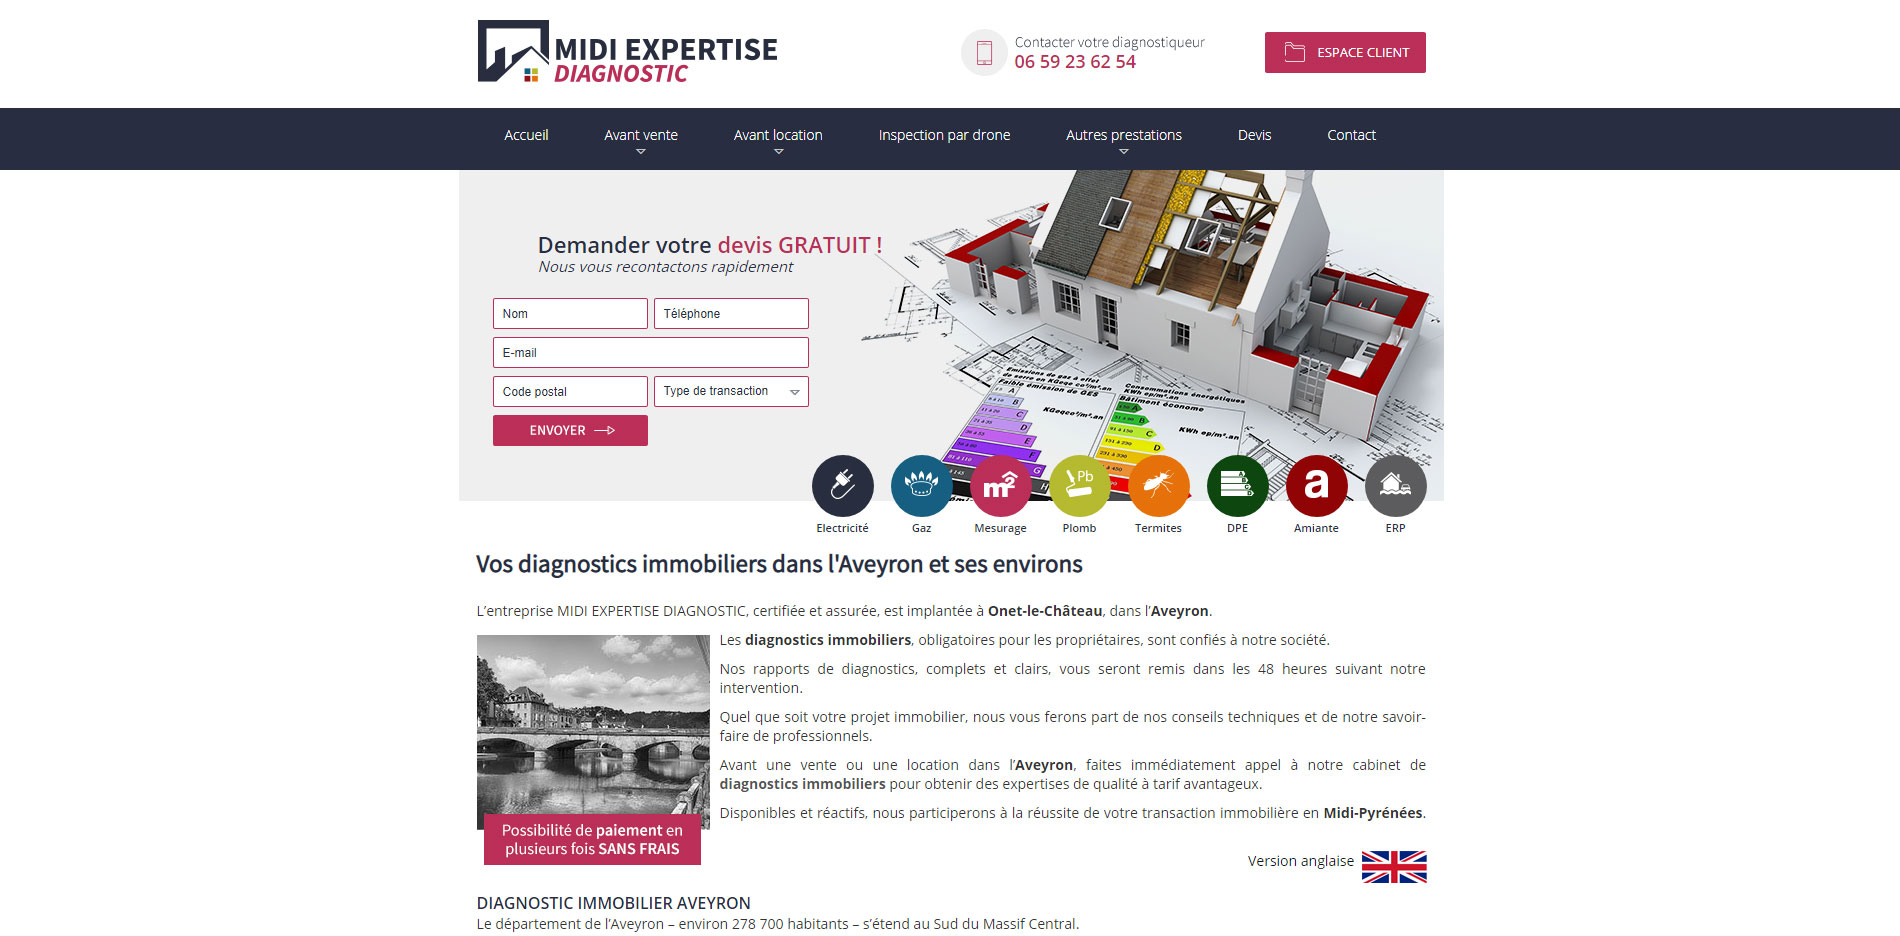 Diagnostic immobilier Aveyron